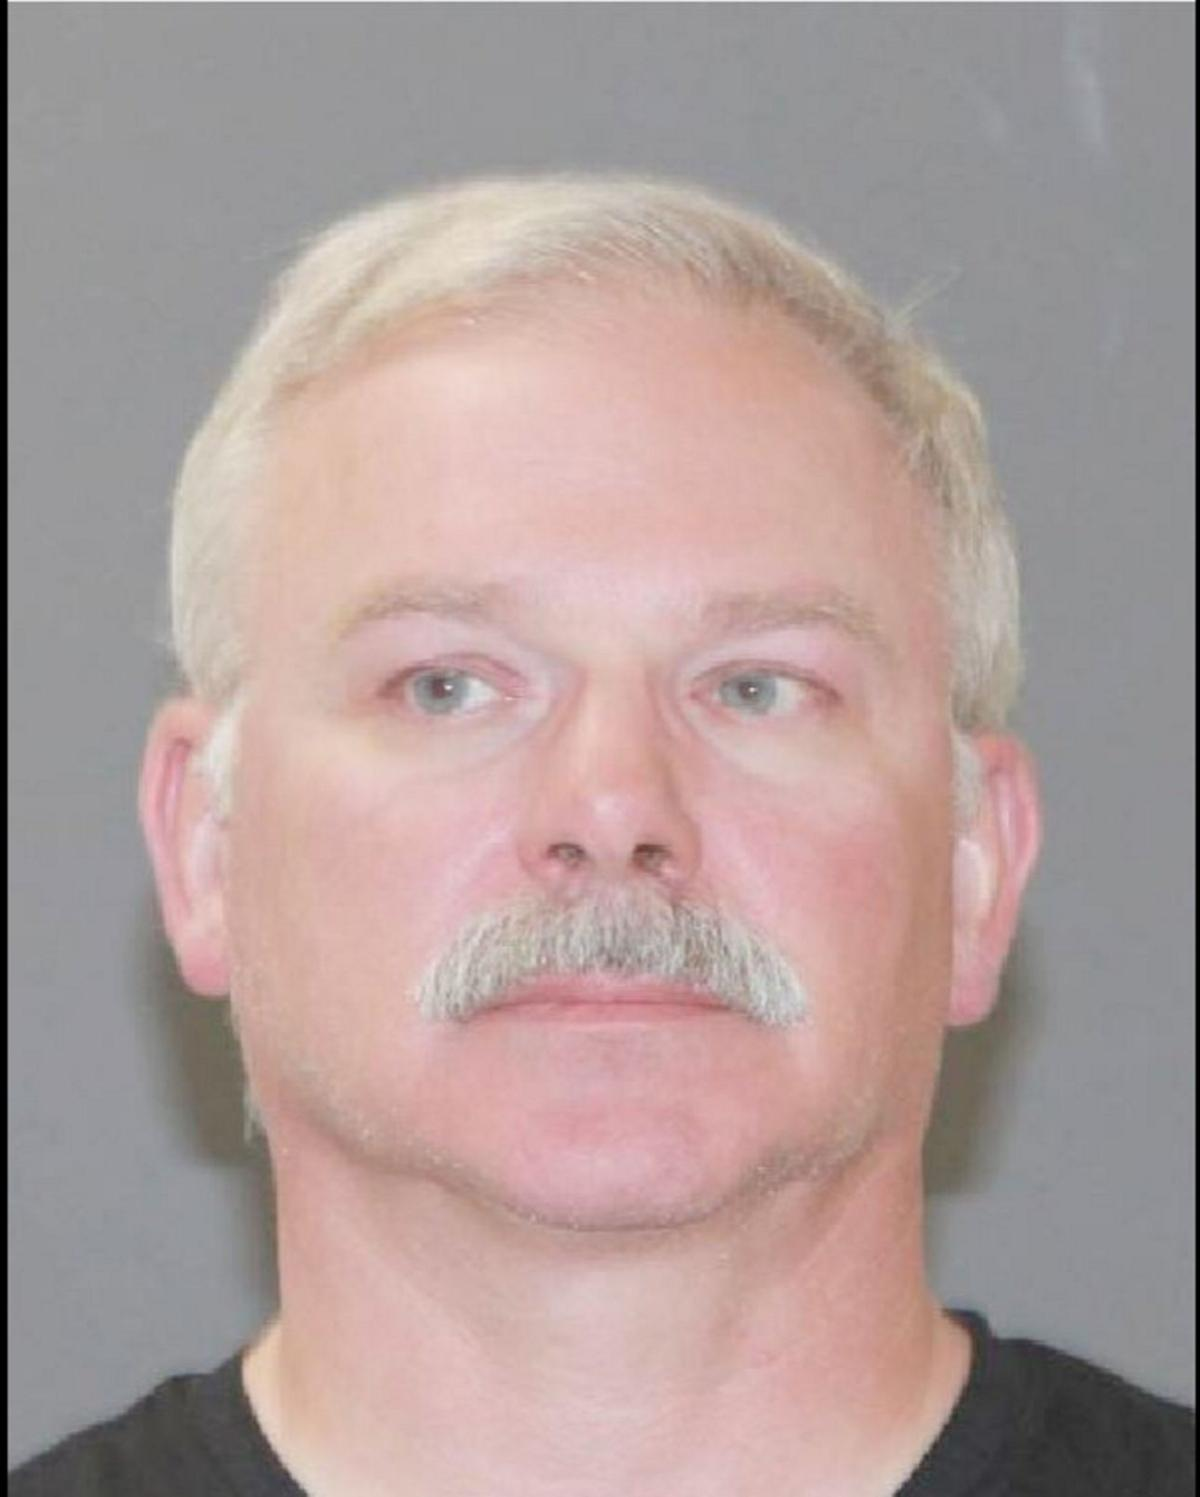 Boy Scout leader charged with St. Lawrence County camp sex crimes